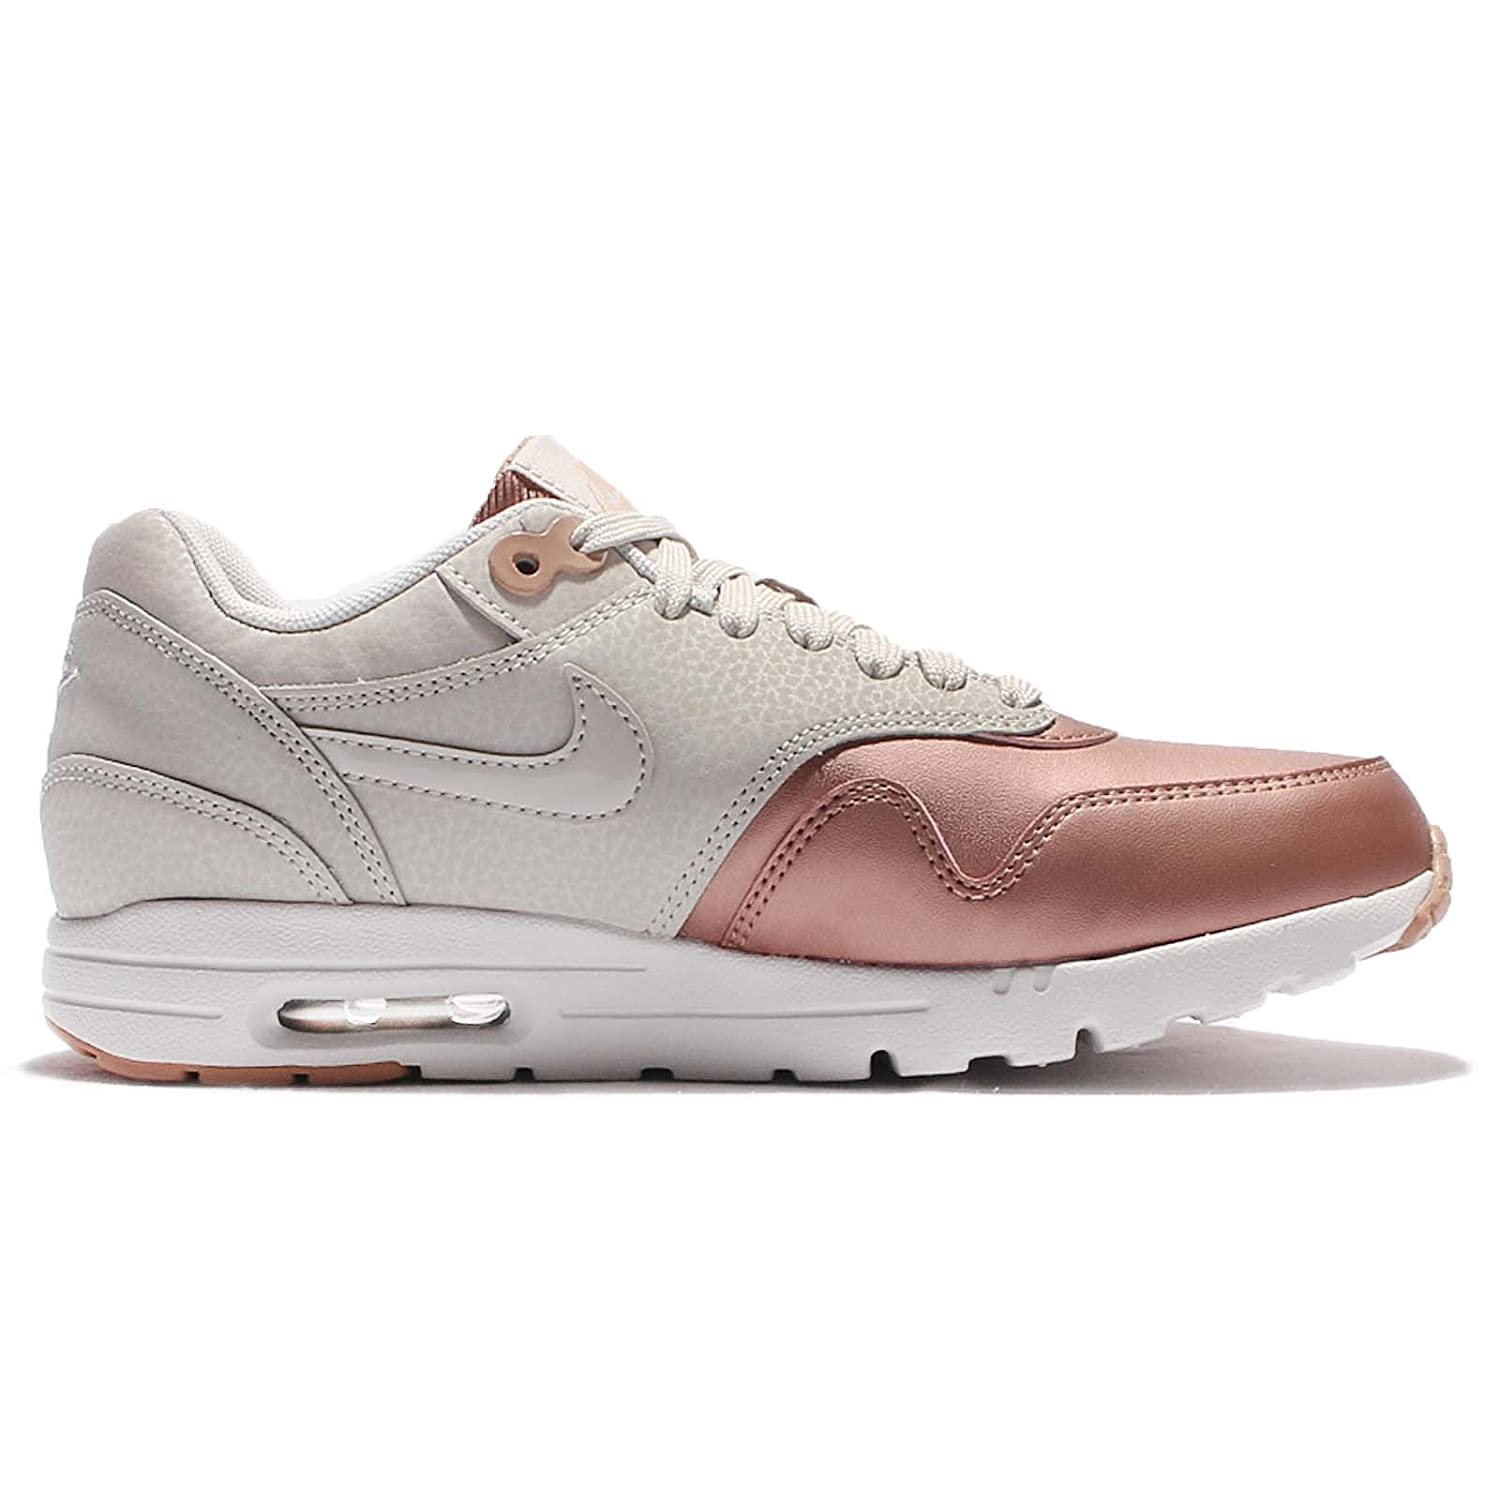 Nike Women's Wmns Air Max 1 Ultra SE, LIGHT BONELIGHT BONE MTLC RED BRONZE, 6 US